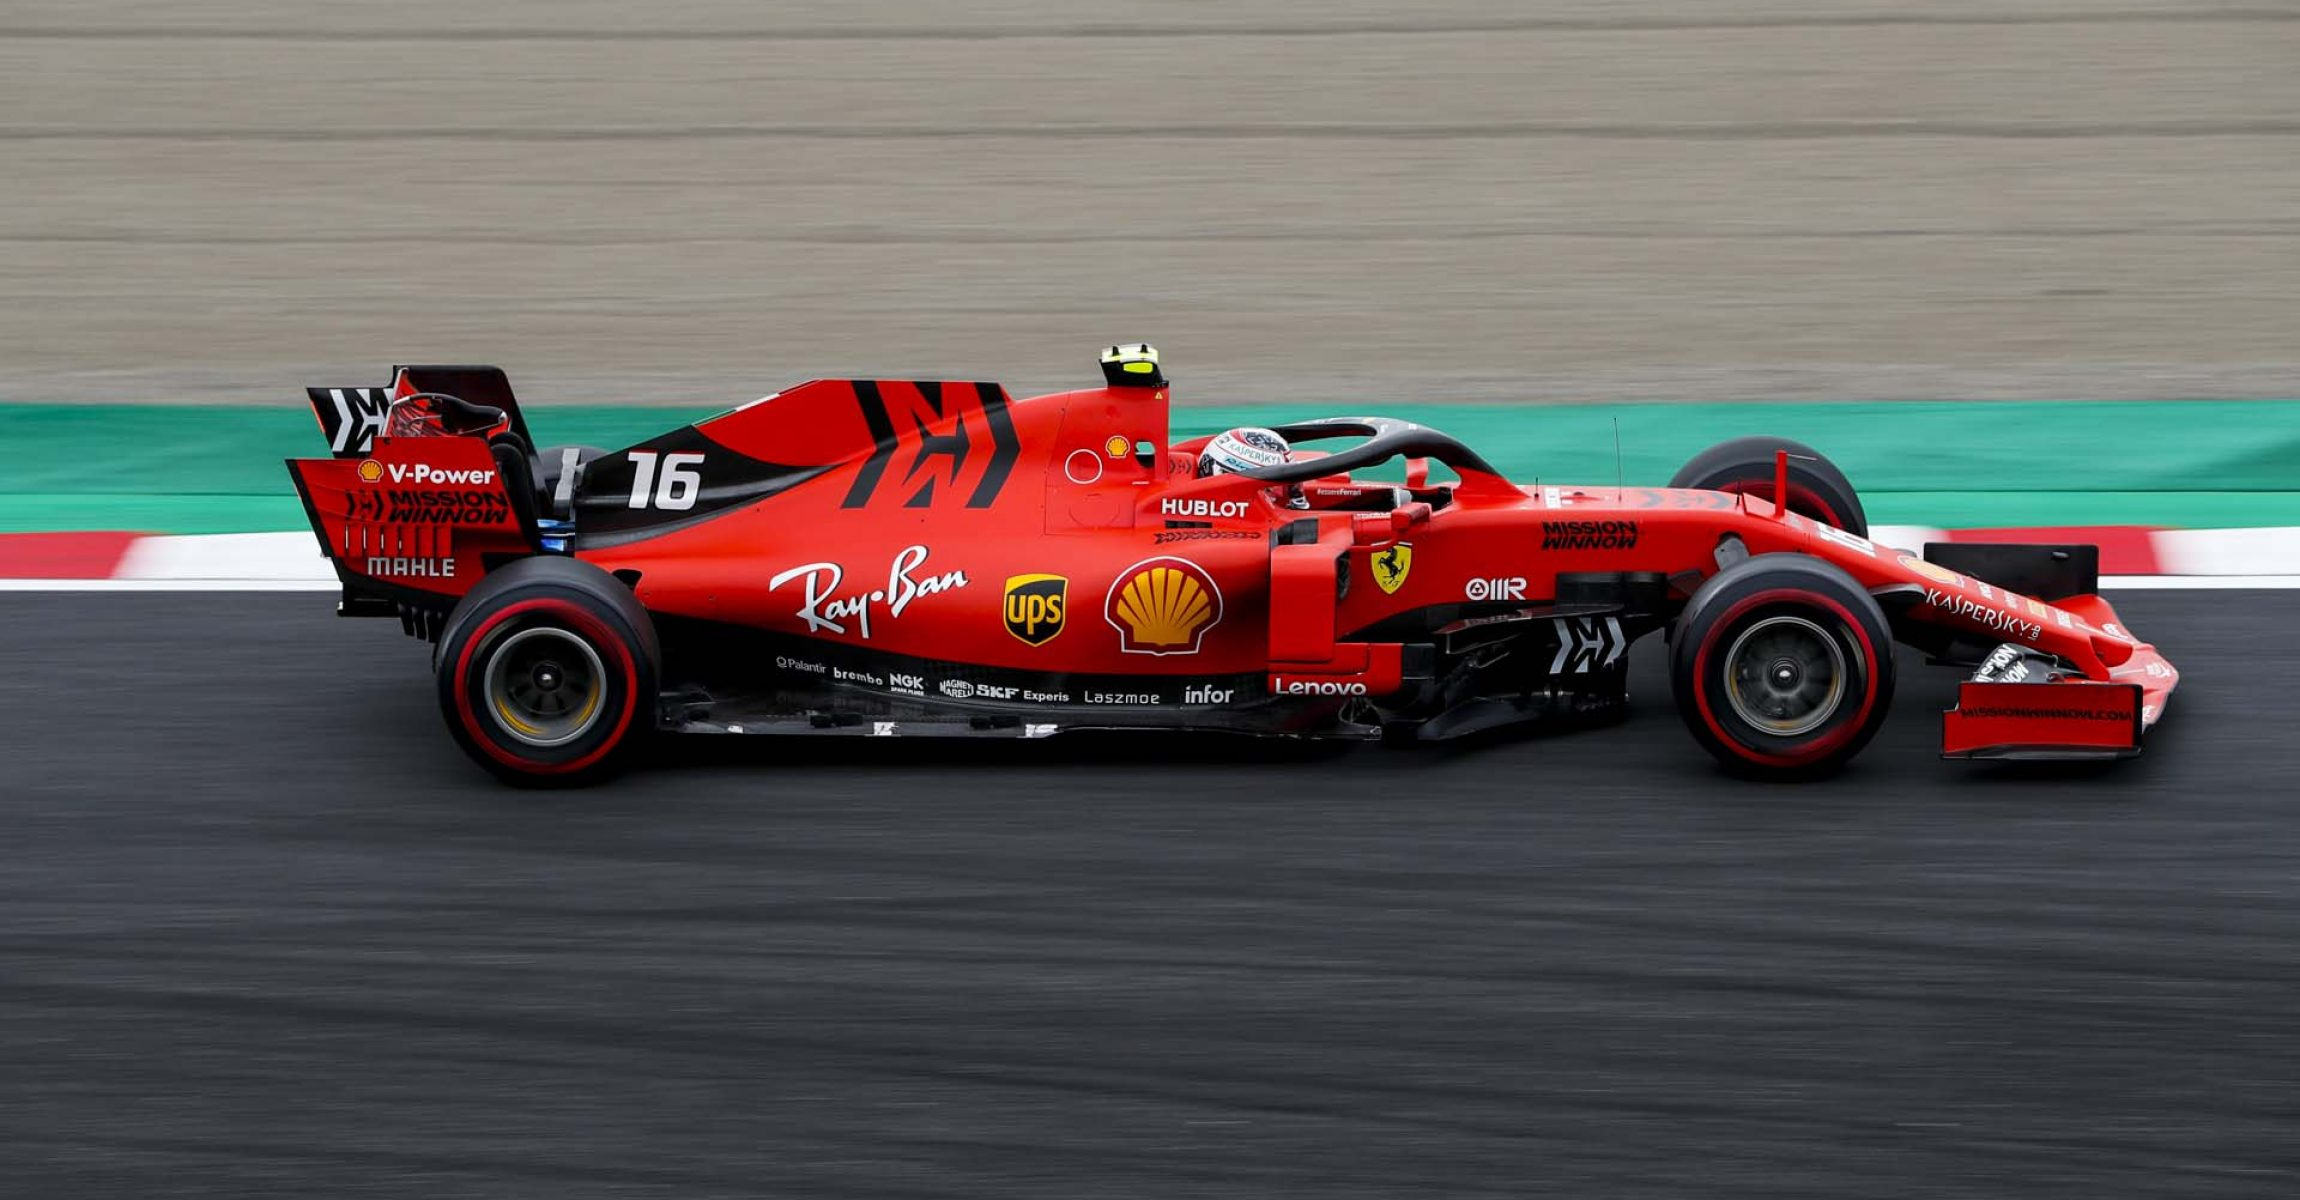 SUZUKA, JAPAN - OCTOBER 11: Charles Leclerc, Ferrari SF90 during the Japanese GP at Suzuka on October 11, 2019 in Suzuka, Japan. (Photo by Zak Mauger / LAT Images)